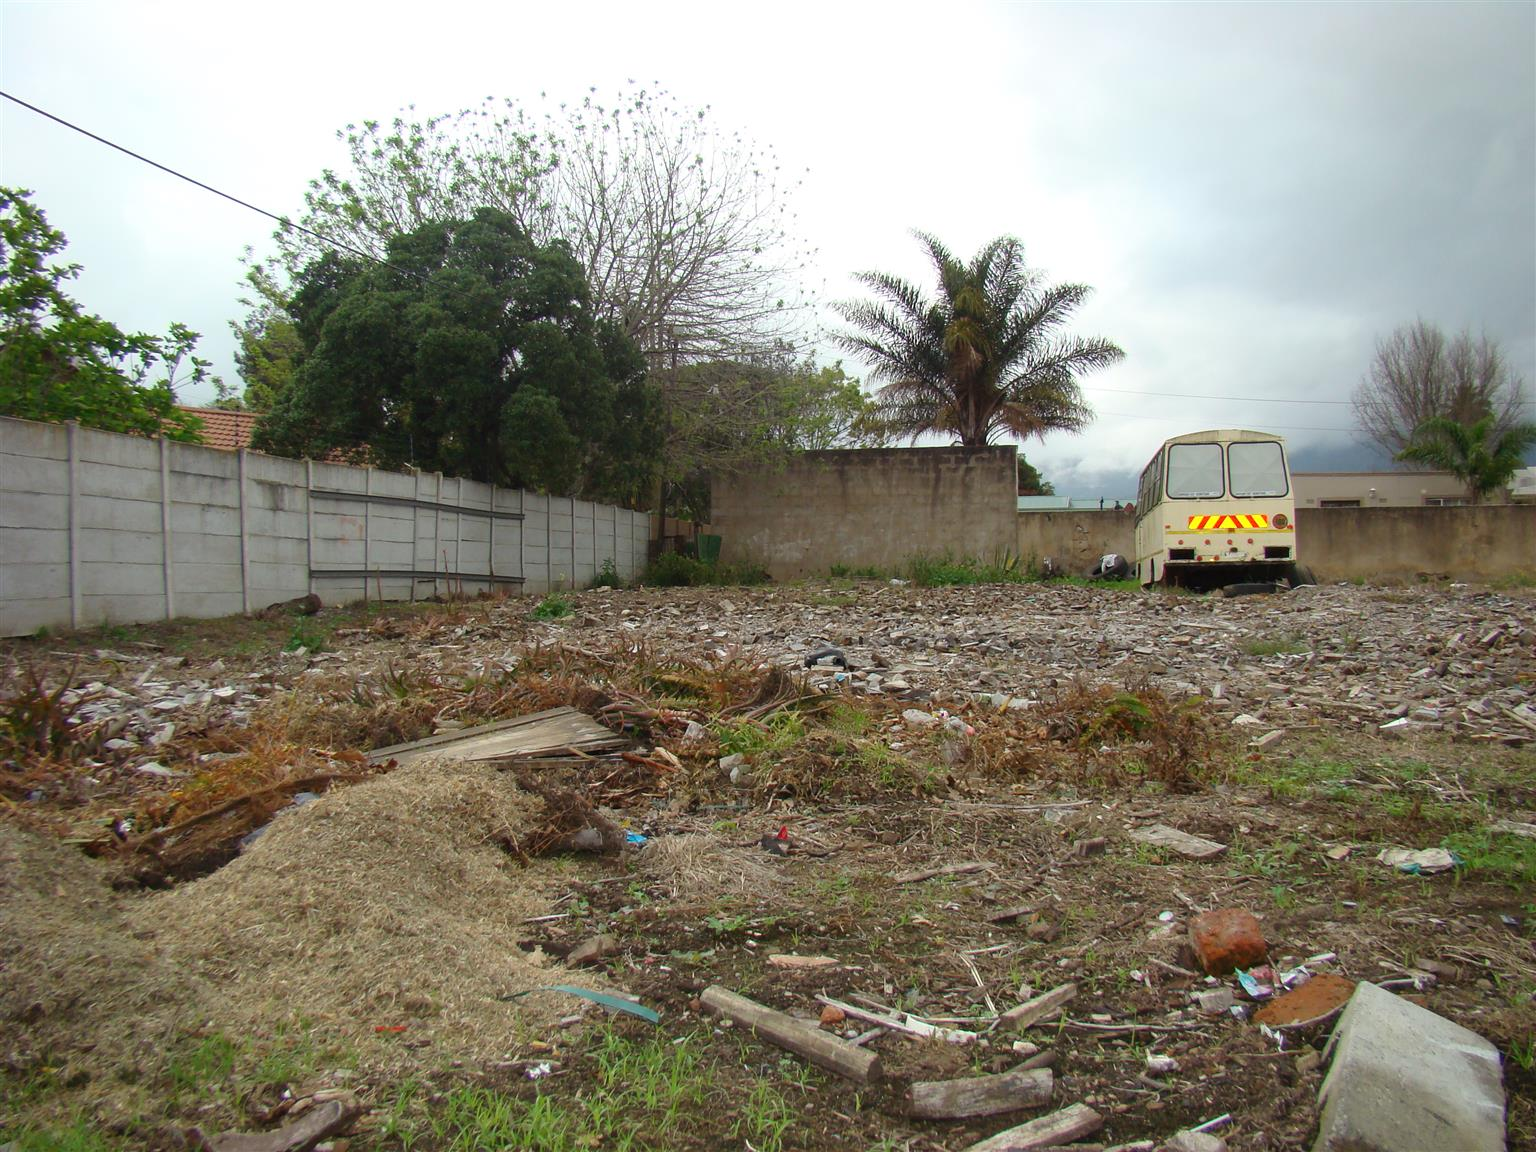 Vacant land for sale in Balnco, George